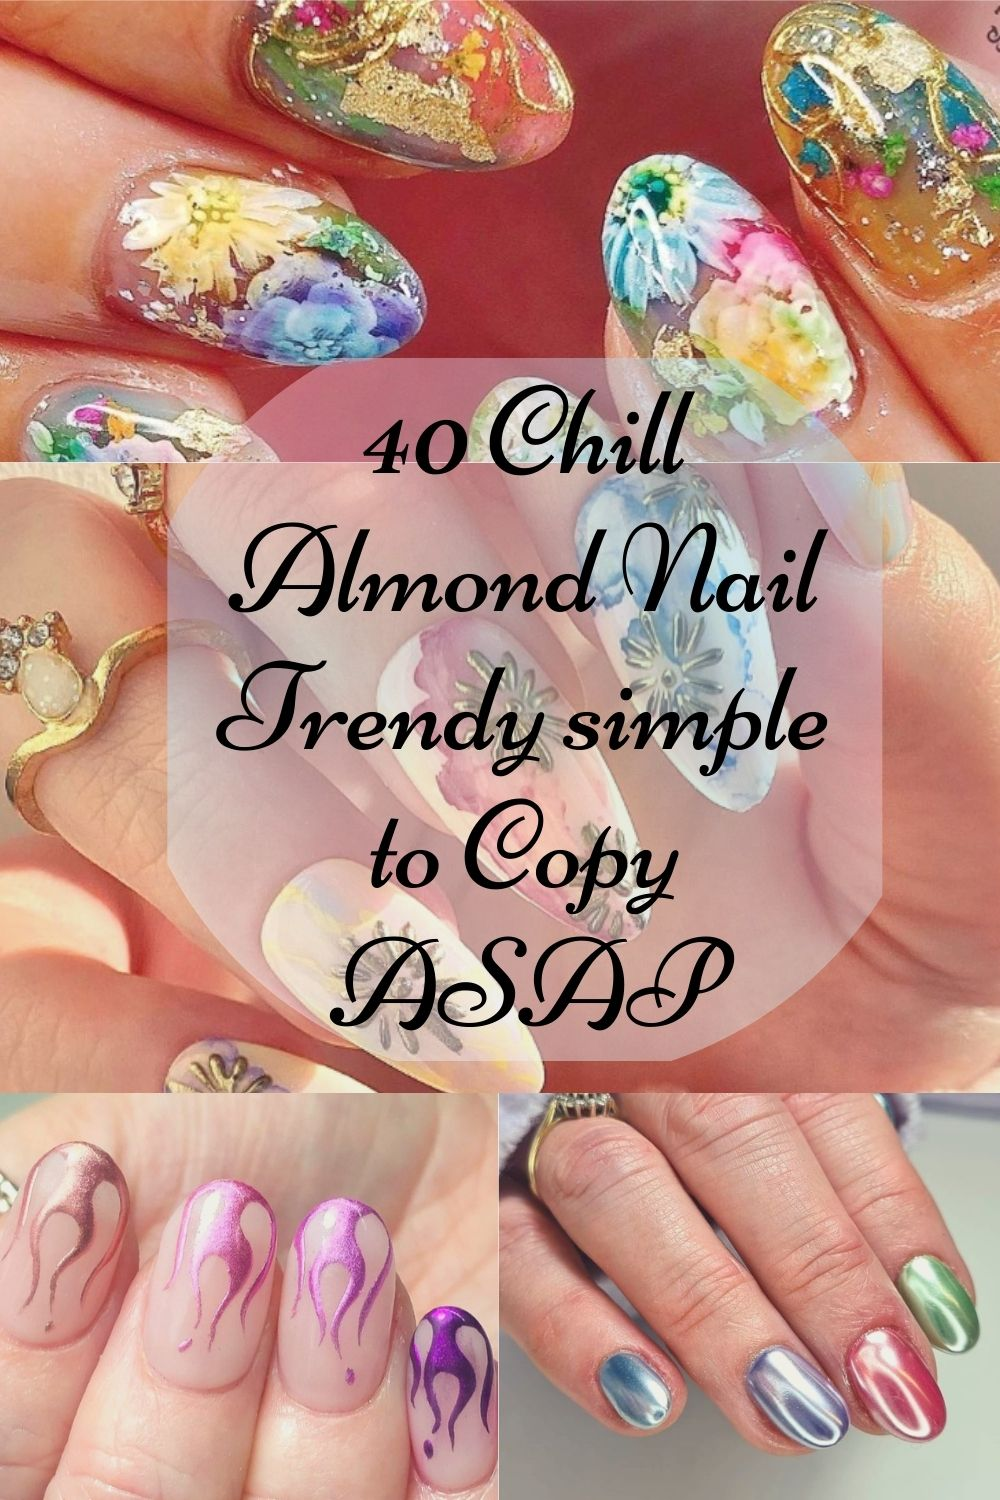 40 Chill Almond Nail Trendy Simple to Copy ASAP!